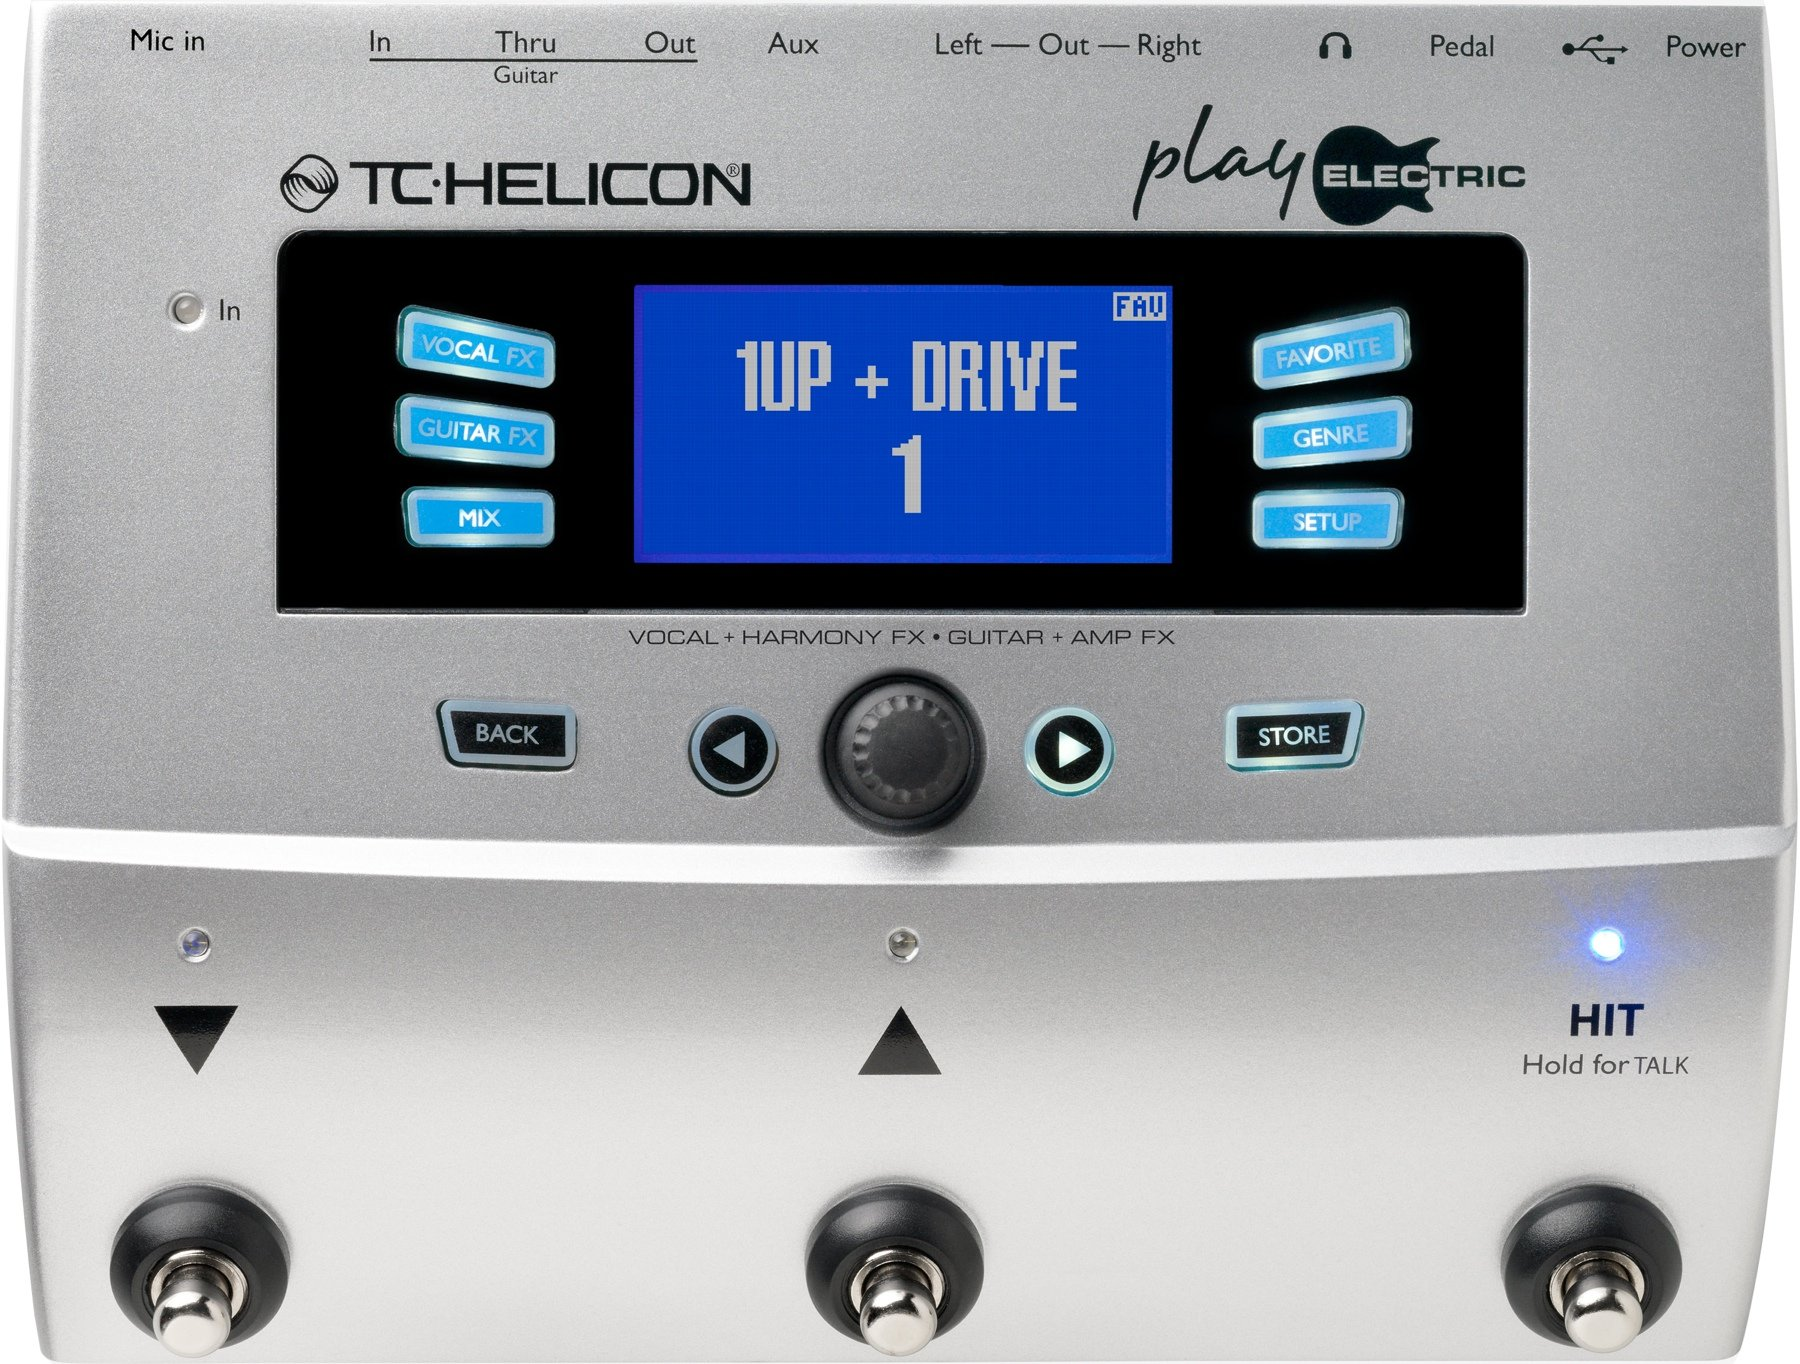 Tc Helicon Play Electric Sweetwater Strat 4 Way Switch Options For This Setup Harmony Central Image 1